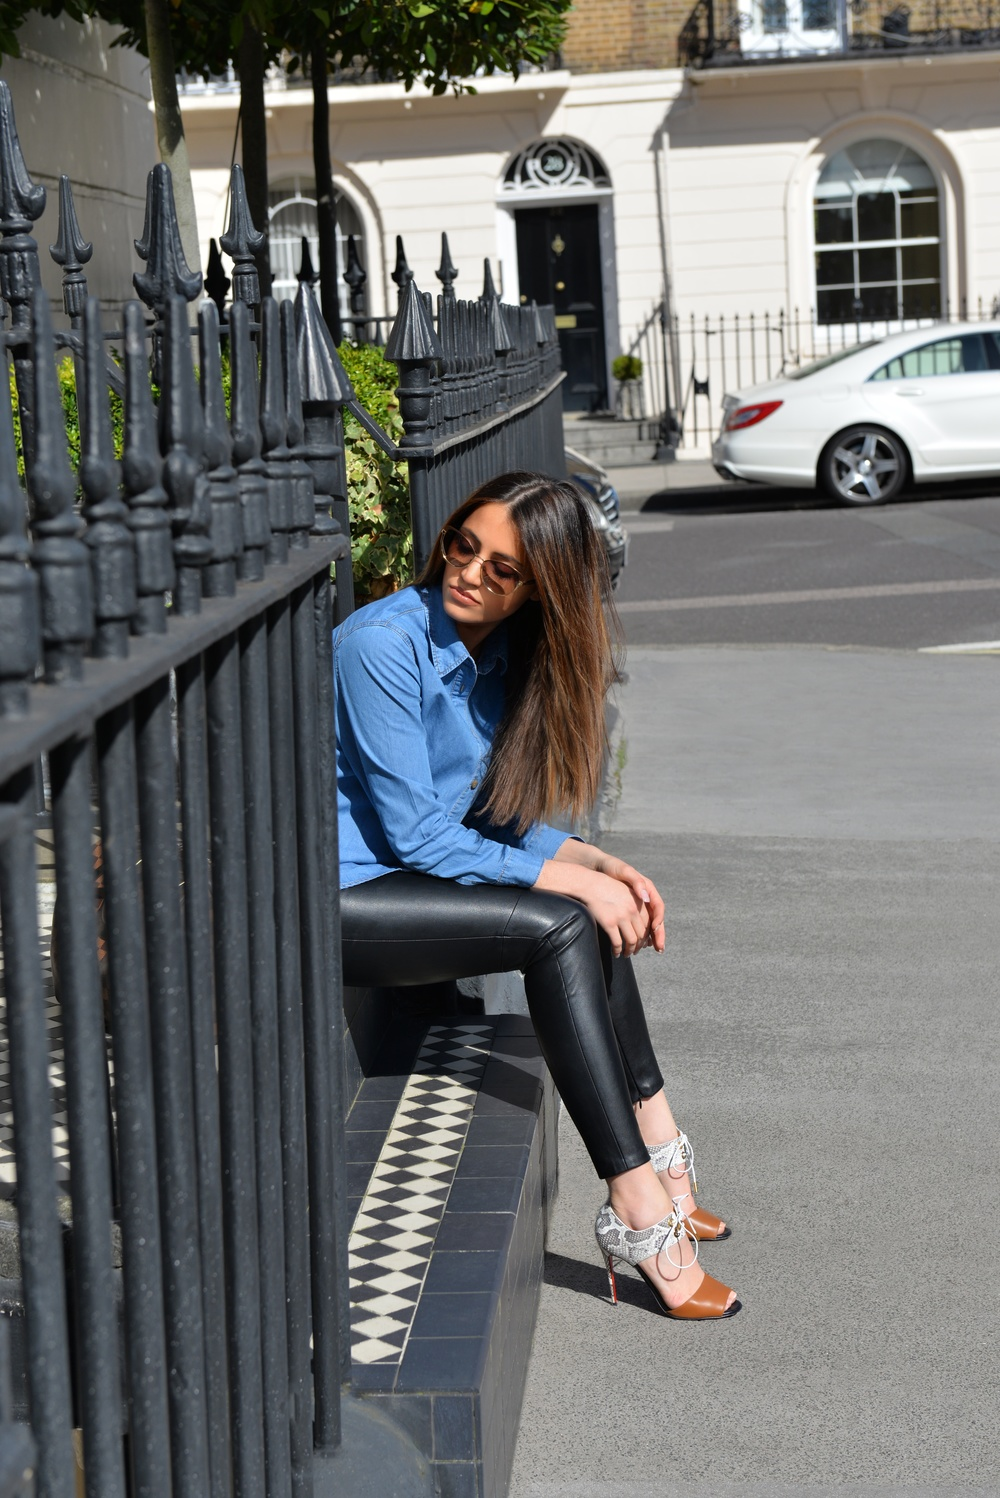 photo (3) The Vanillawoods Maureen Sophie Kragt, leather pants, denim shirt, skinny jeans, Christian Louboutin Mayerling heels. Best Fashion Blog, personal style blog London